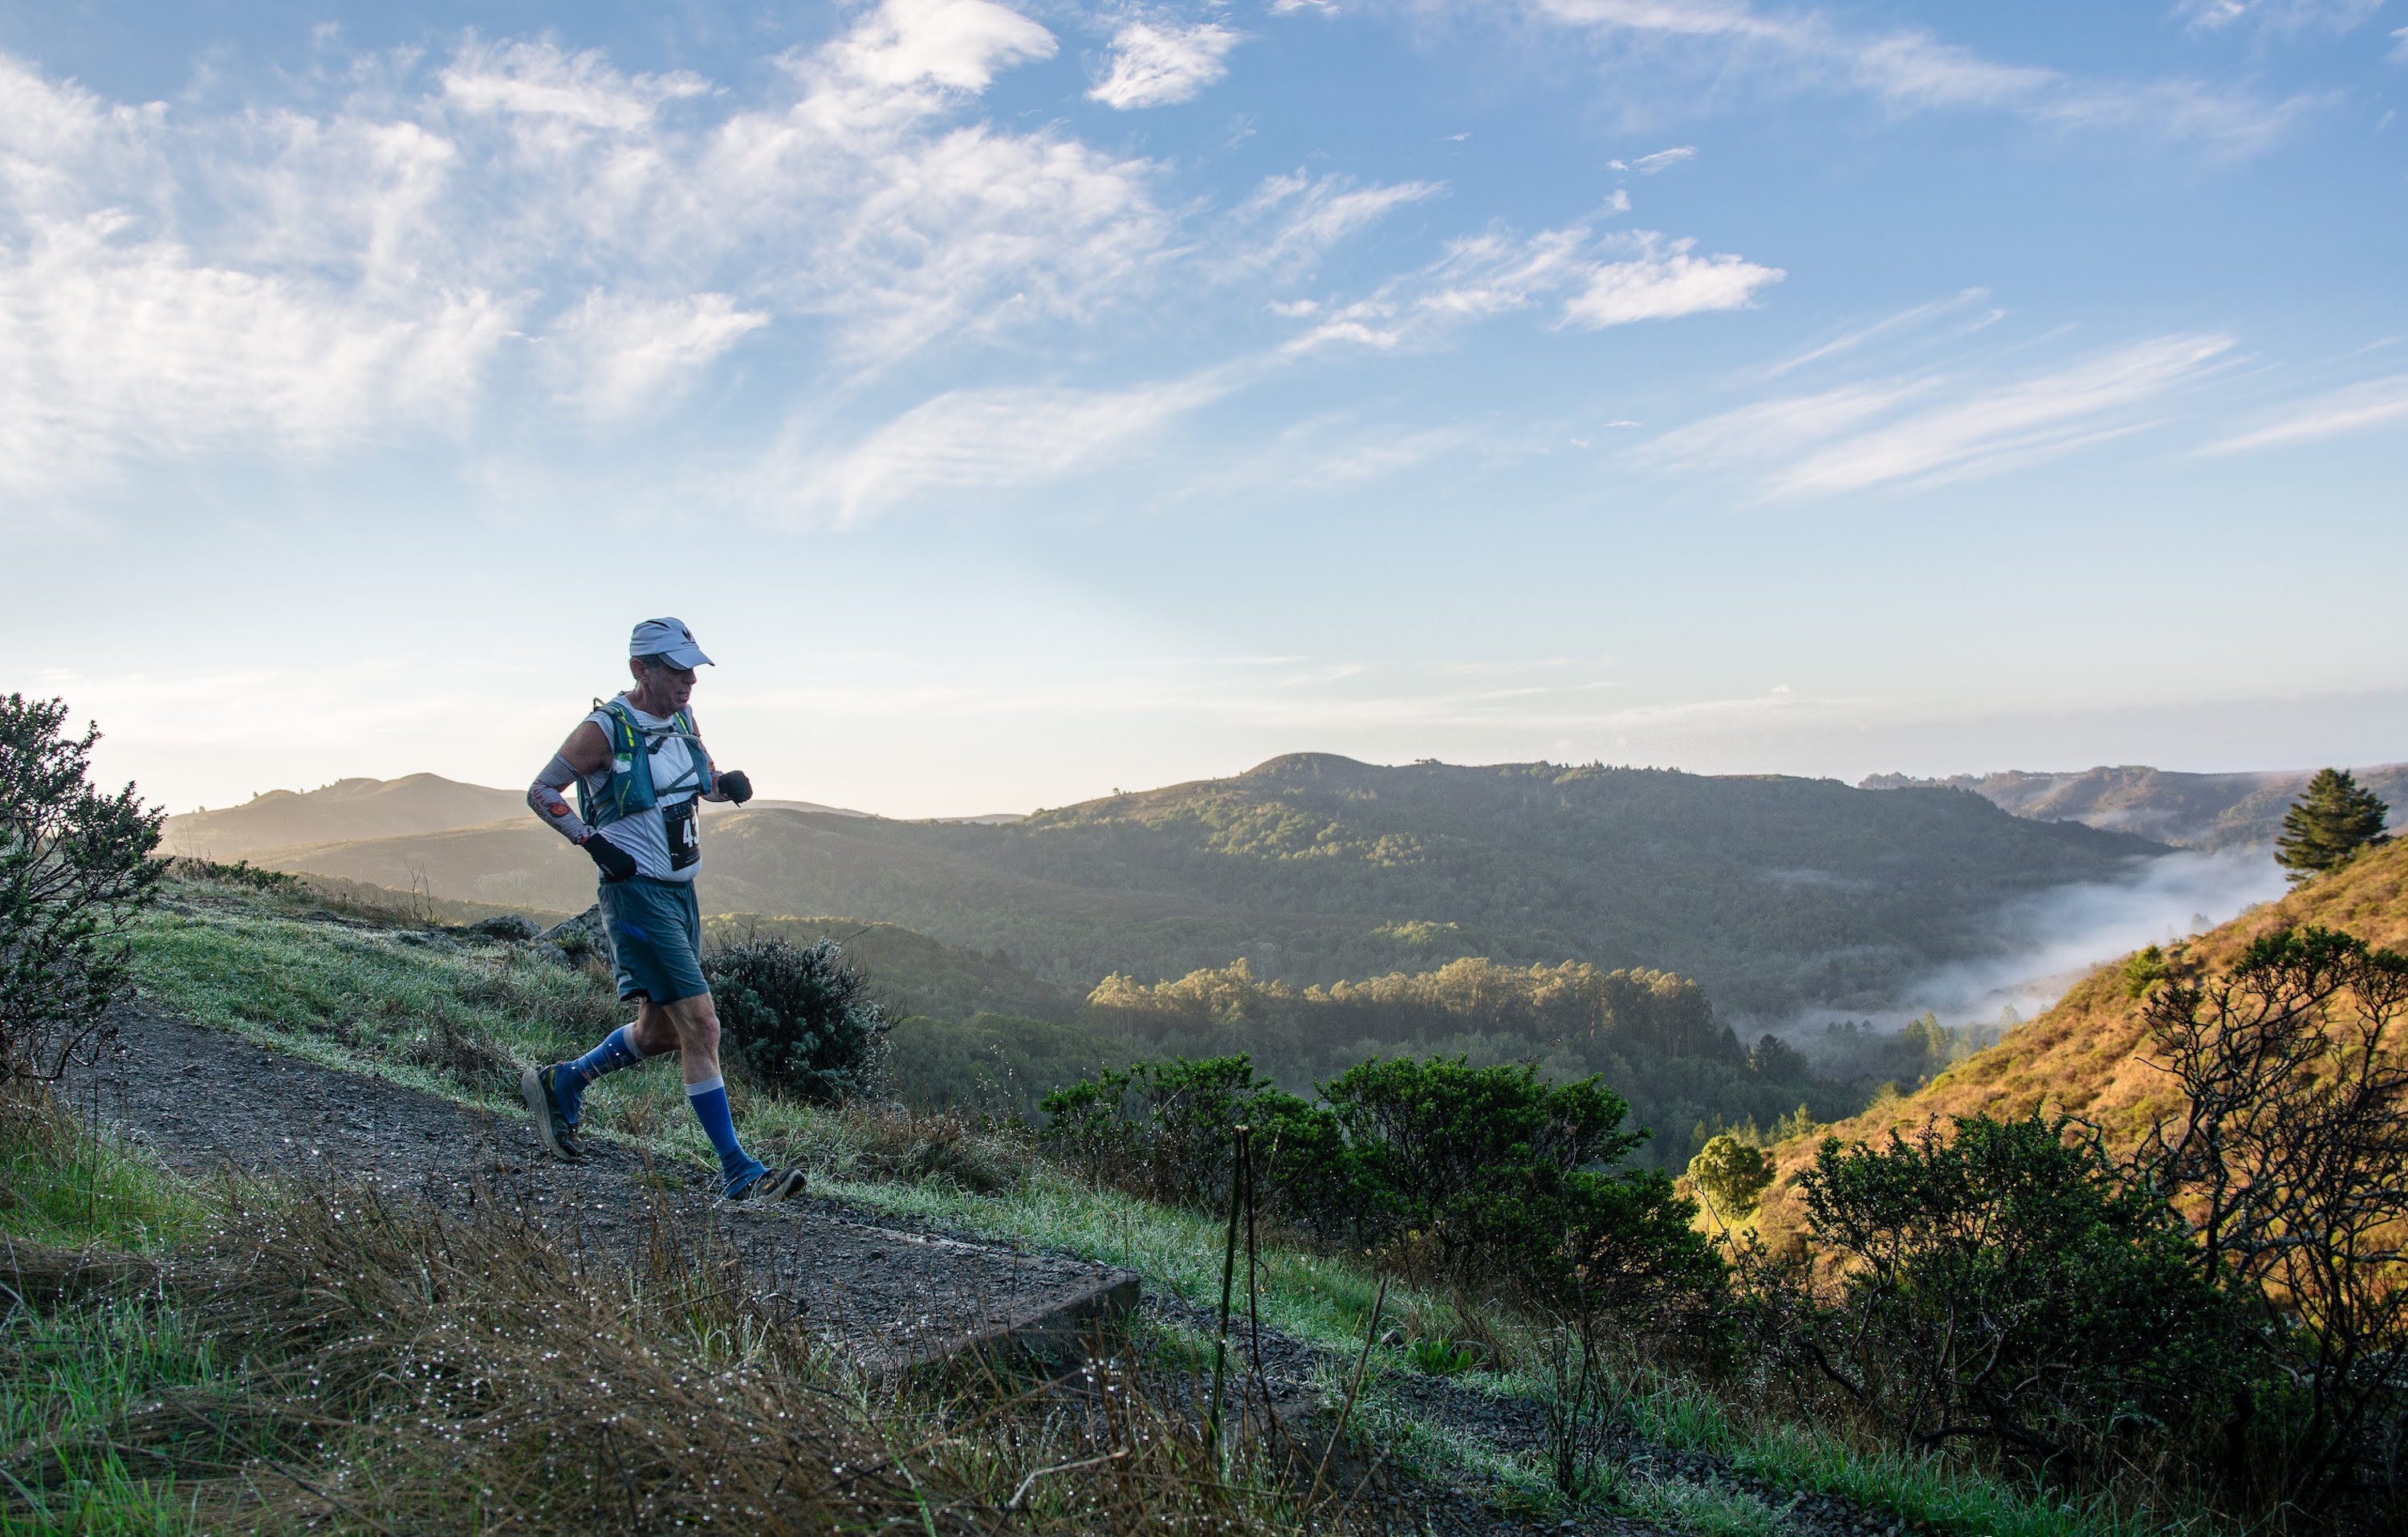 eric spector running down wide gravel trail with mountain overlook